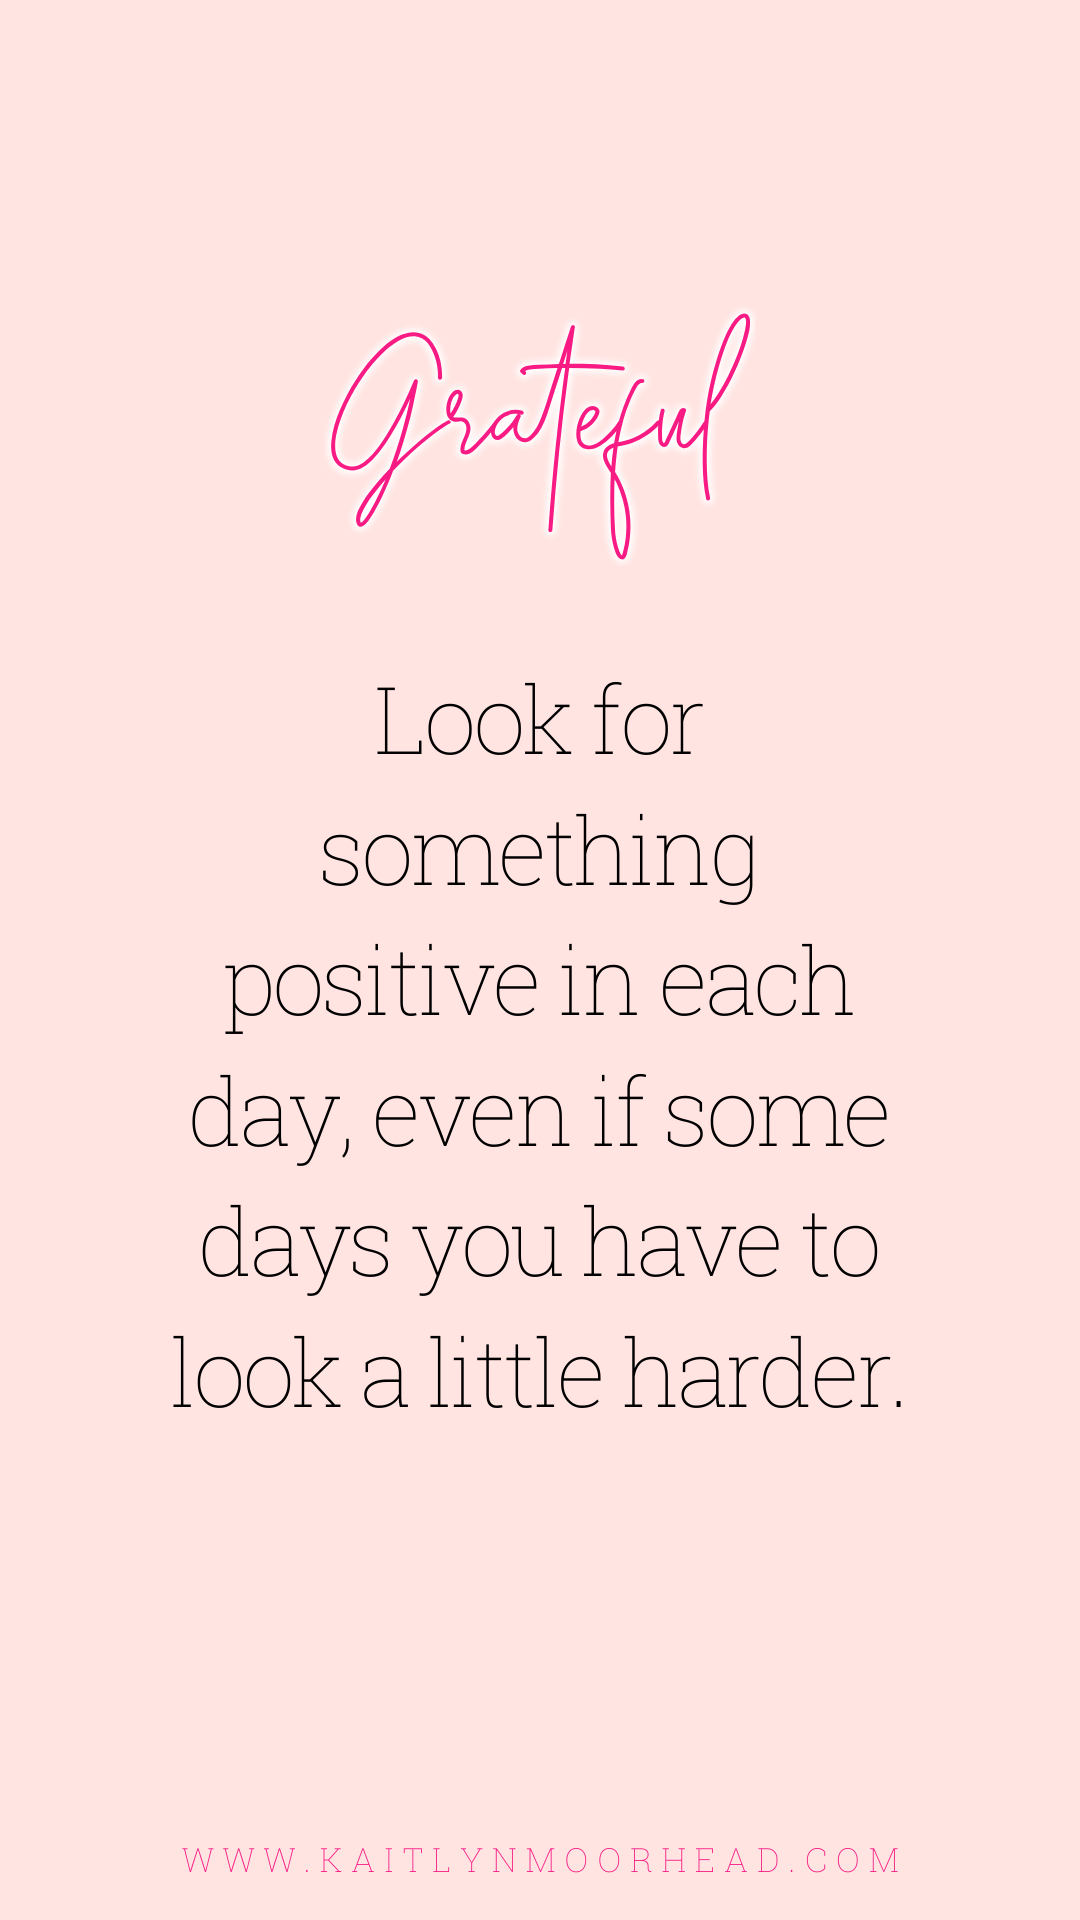 15 Uplifting Quotes To Stay Positive During Hard Times Uplifting Quotes Positive Uplifting Quotes Encouragement Quotes